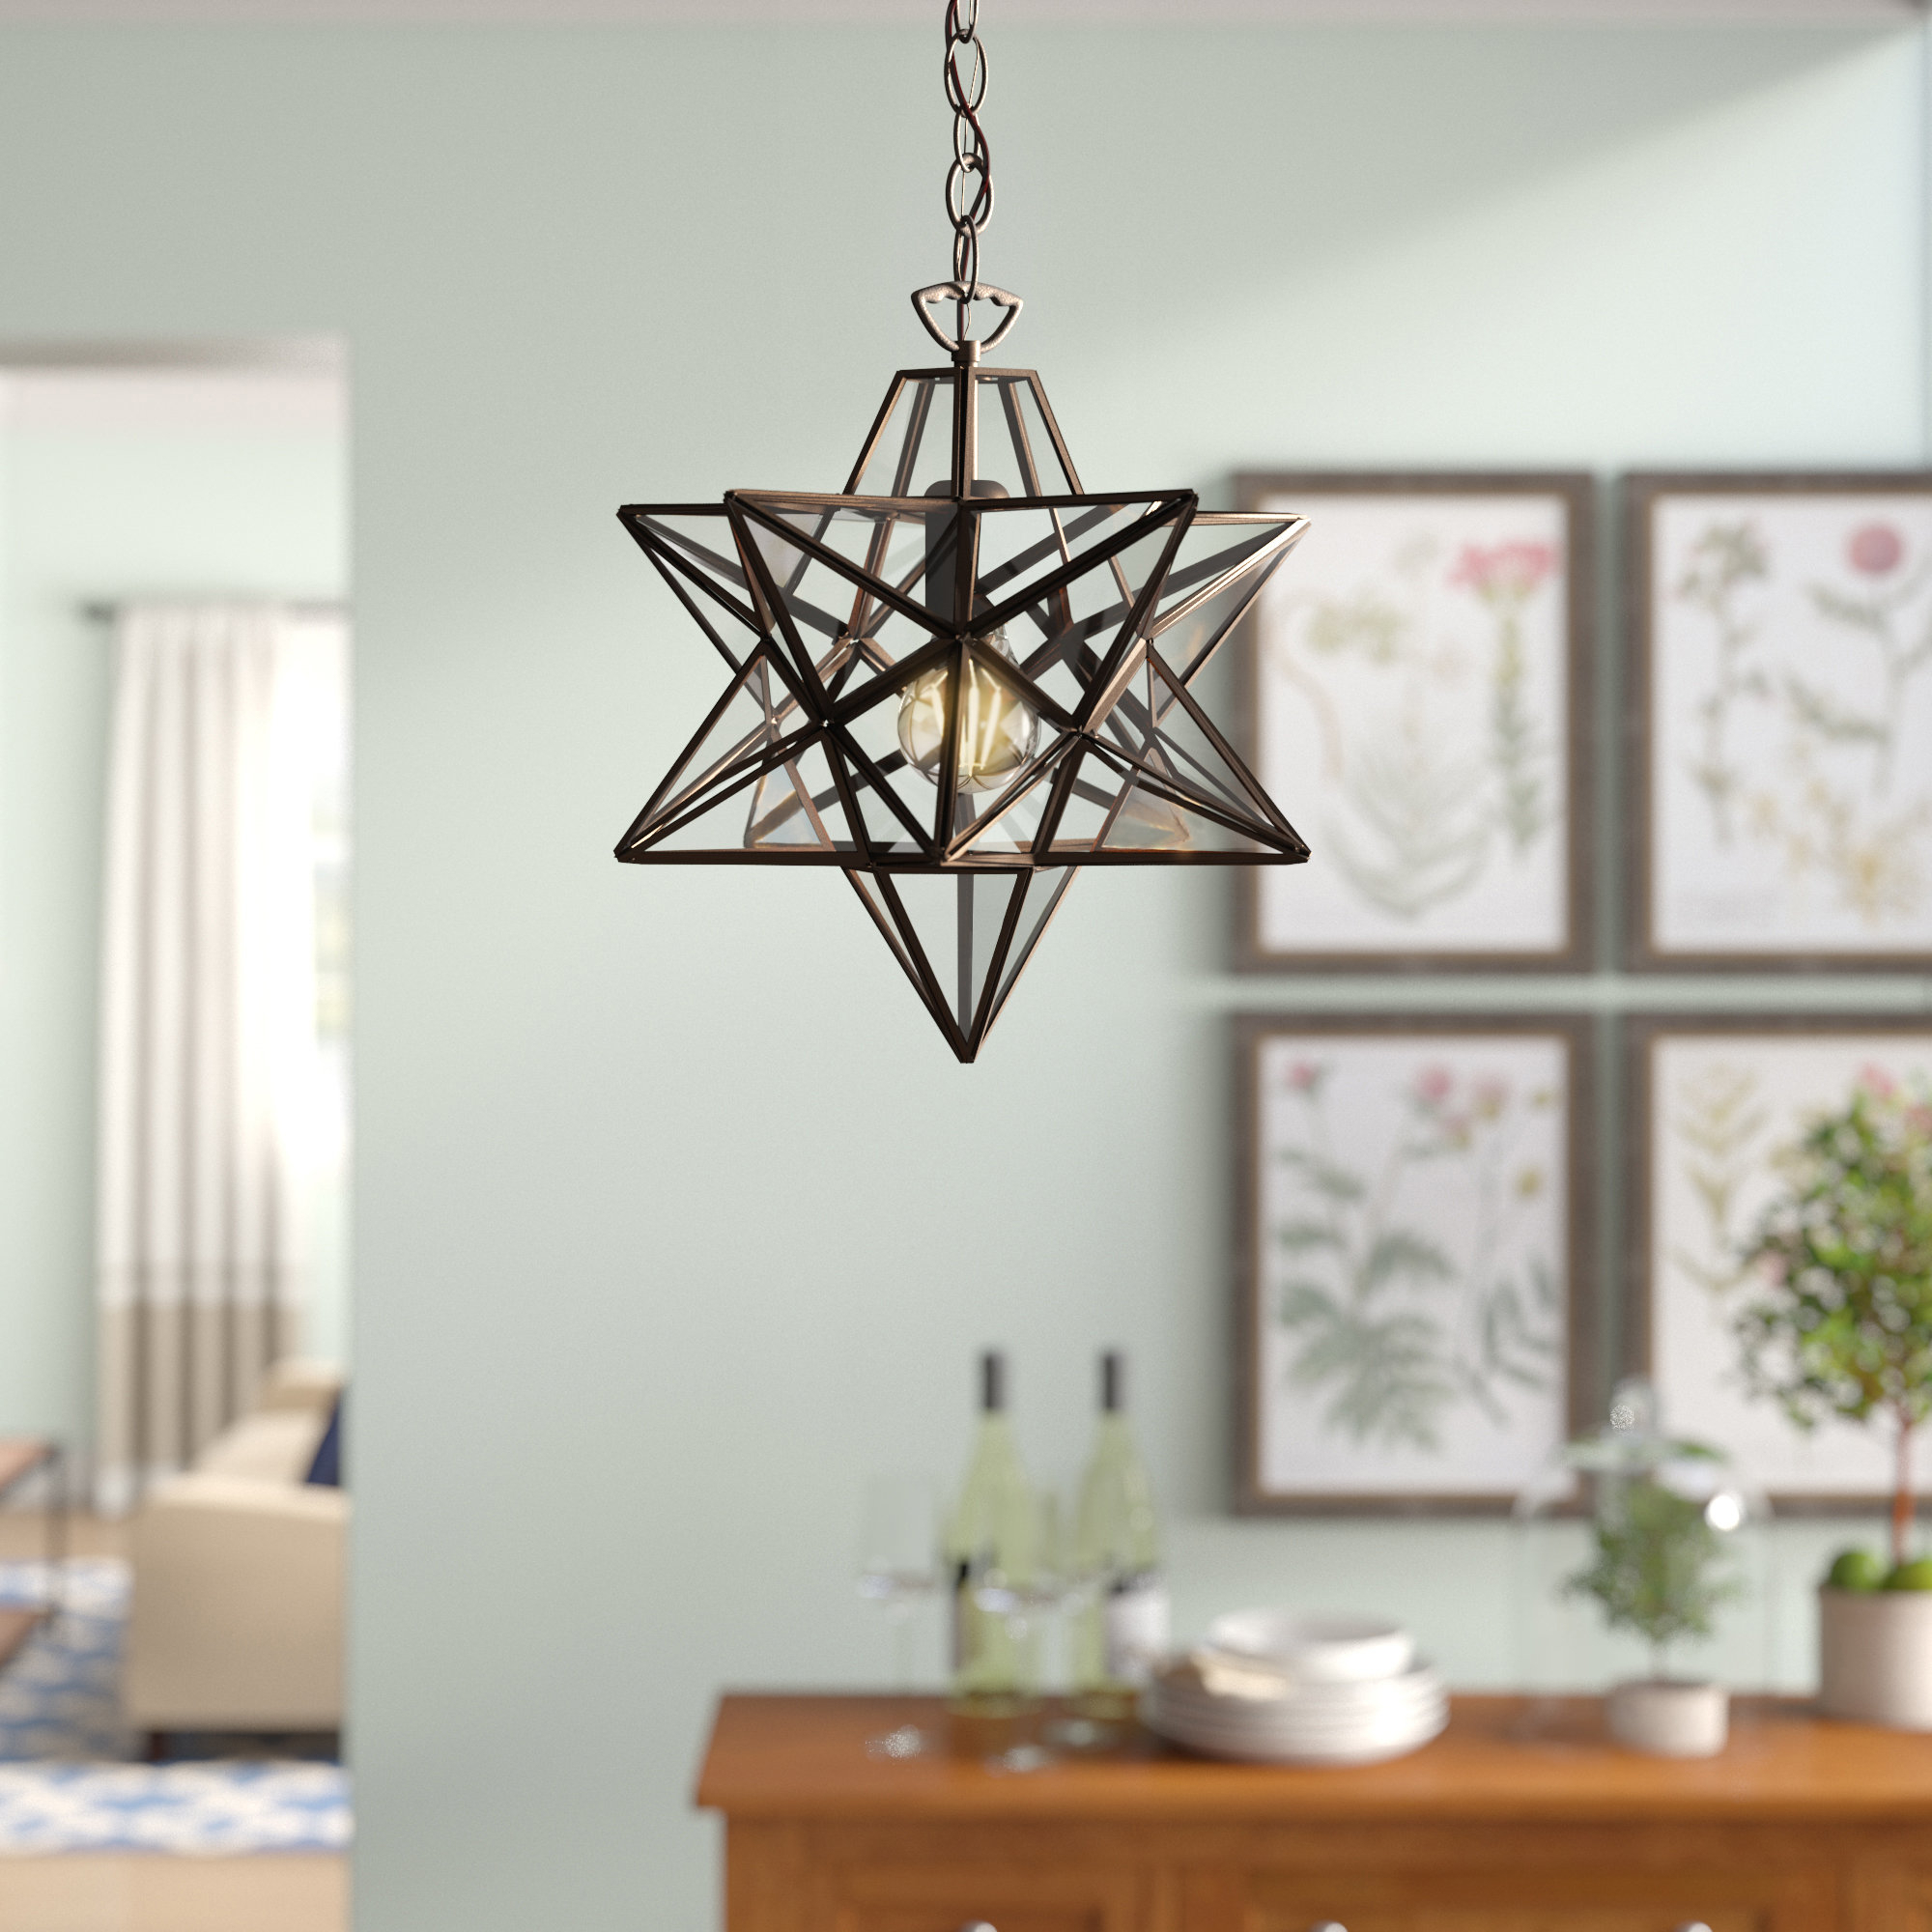 1-Light Single Star Pendant for 1-Light Single Star Pendants (Image 1 of 30)